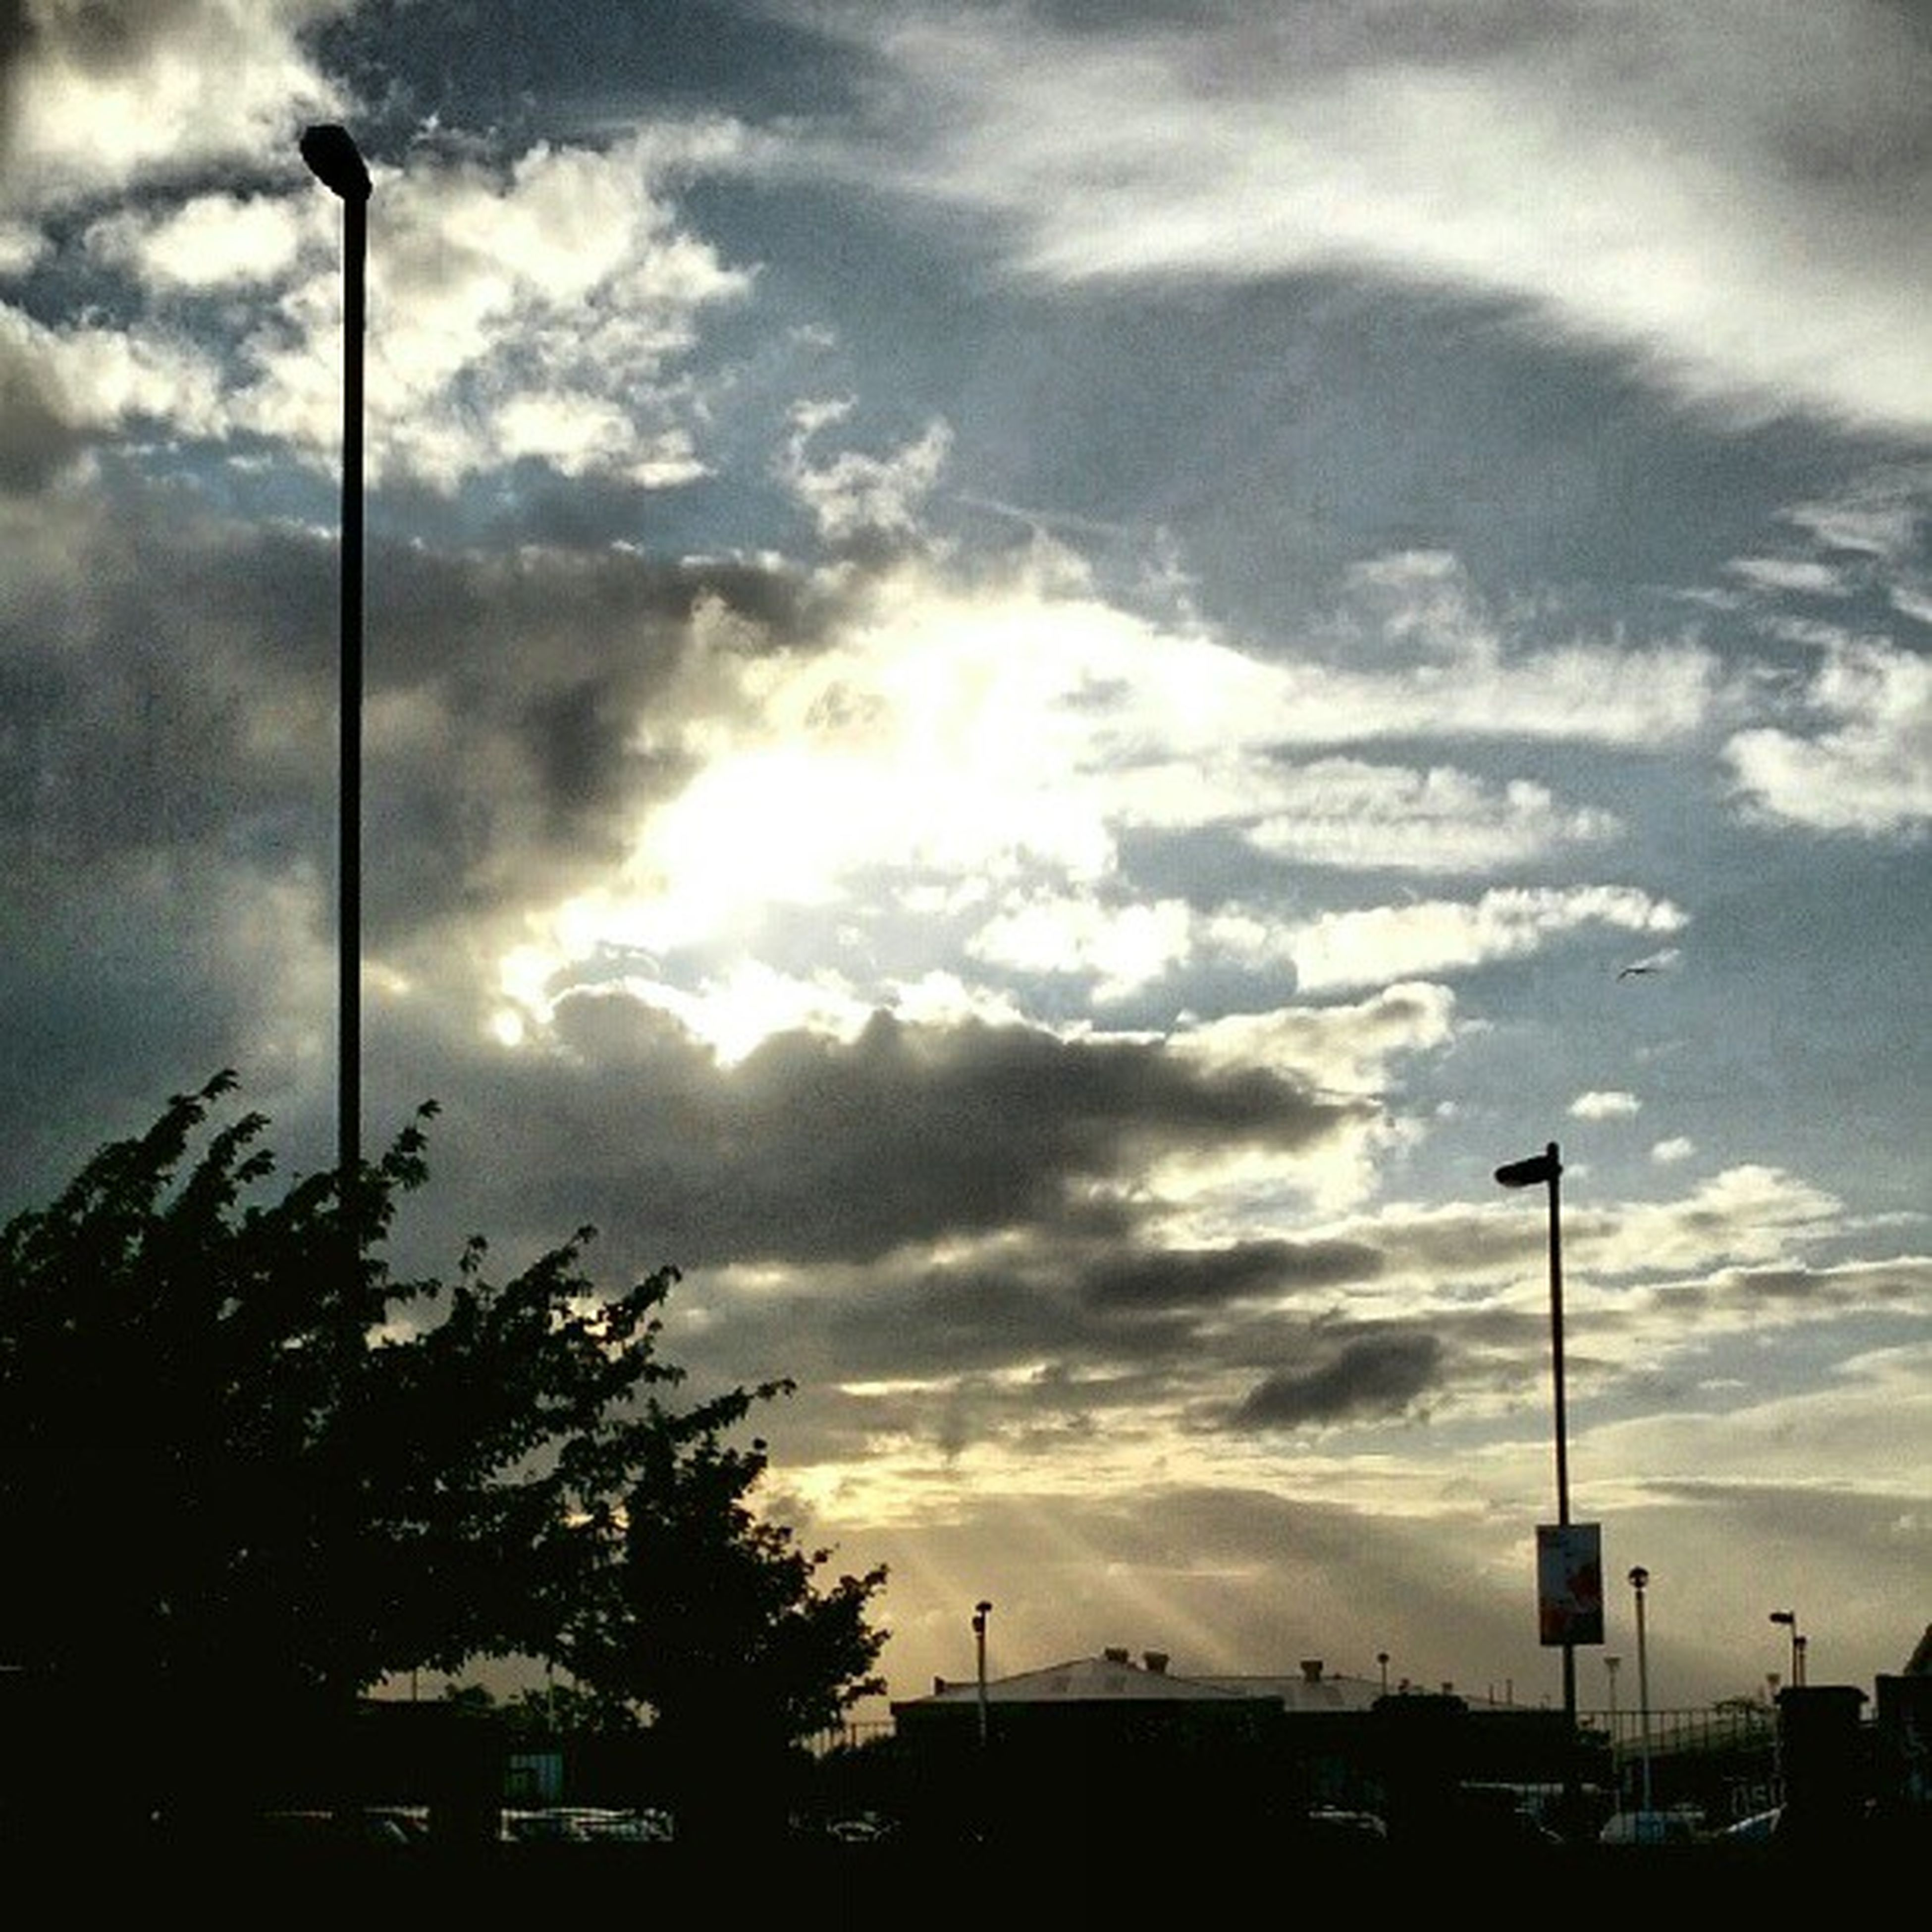 street light, sky, cloud - sky, tree, silhouette, cloudy, low angle view, lighting equipment, cloud, sunset, nature, pole, tranquility, scenics, beauty in nature, tranquil scene, outdoors, weather, overcast, no people